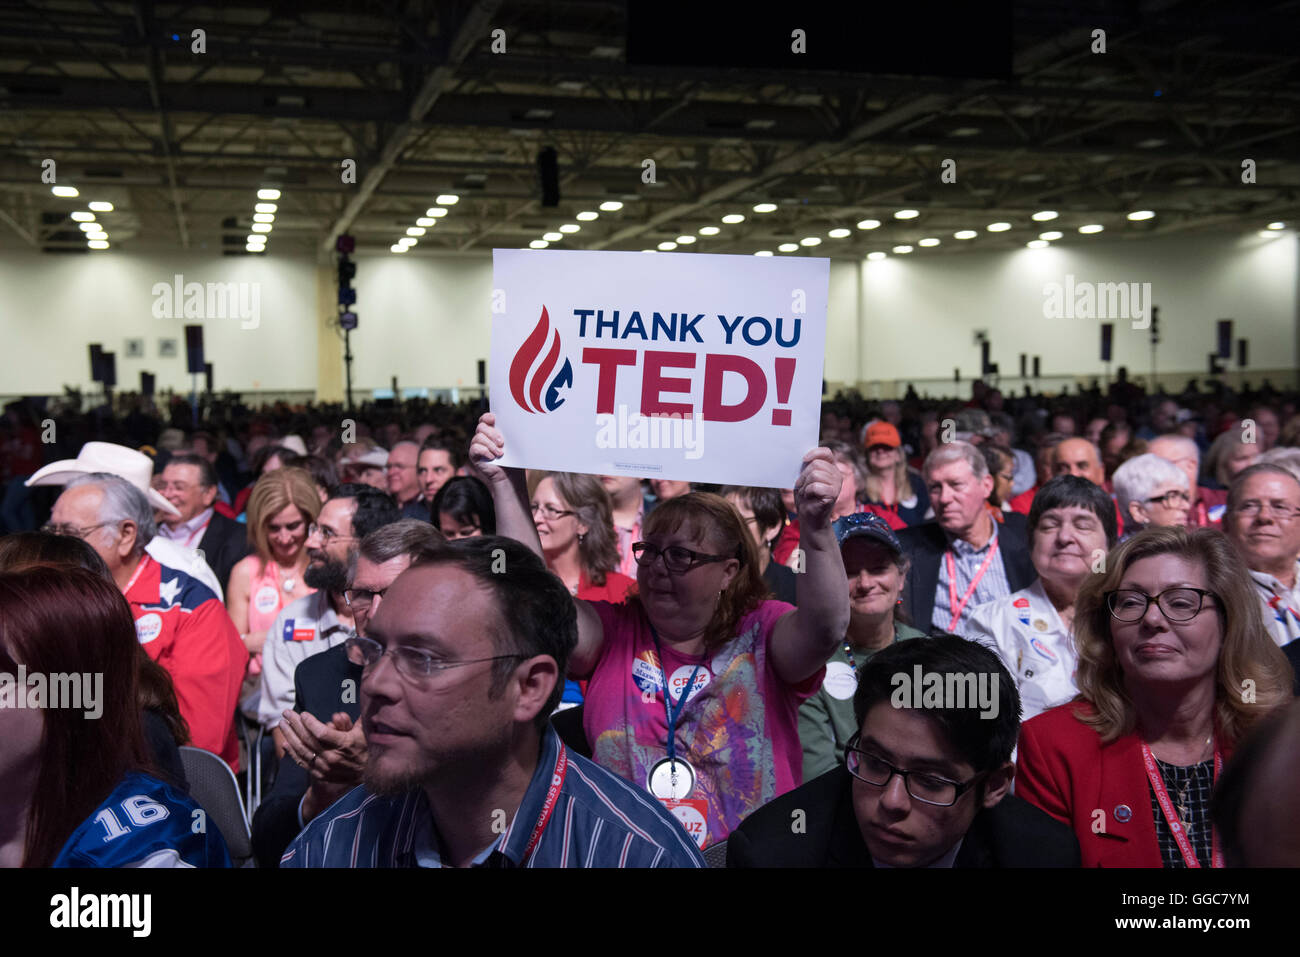 U.S. Senator Ted Cruz of Texas gets applause from the adoring crowd during his speech at Republican Party of Texas - Stock Image